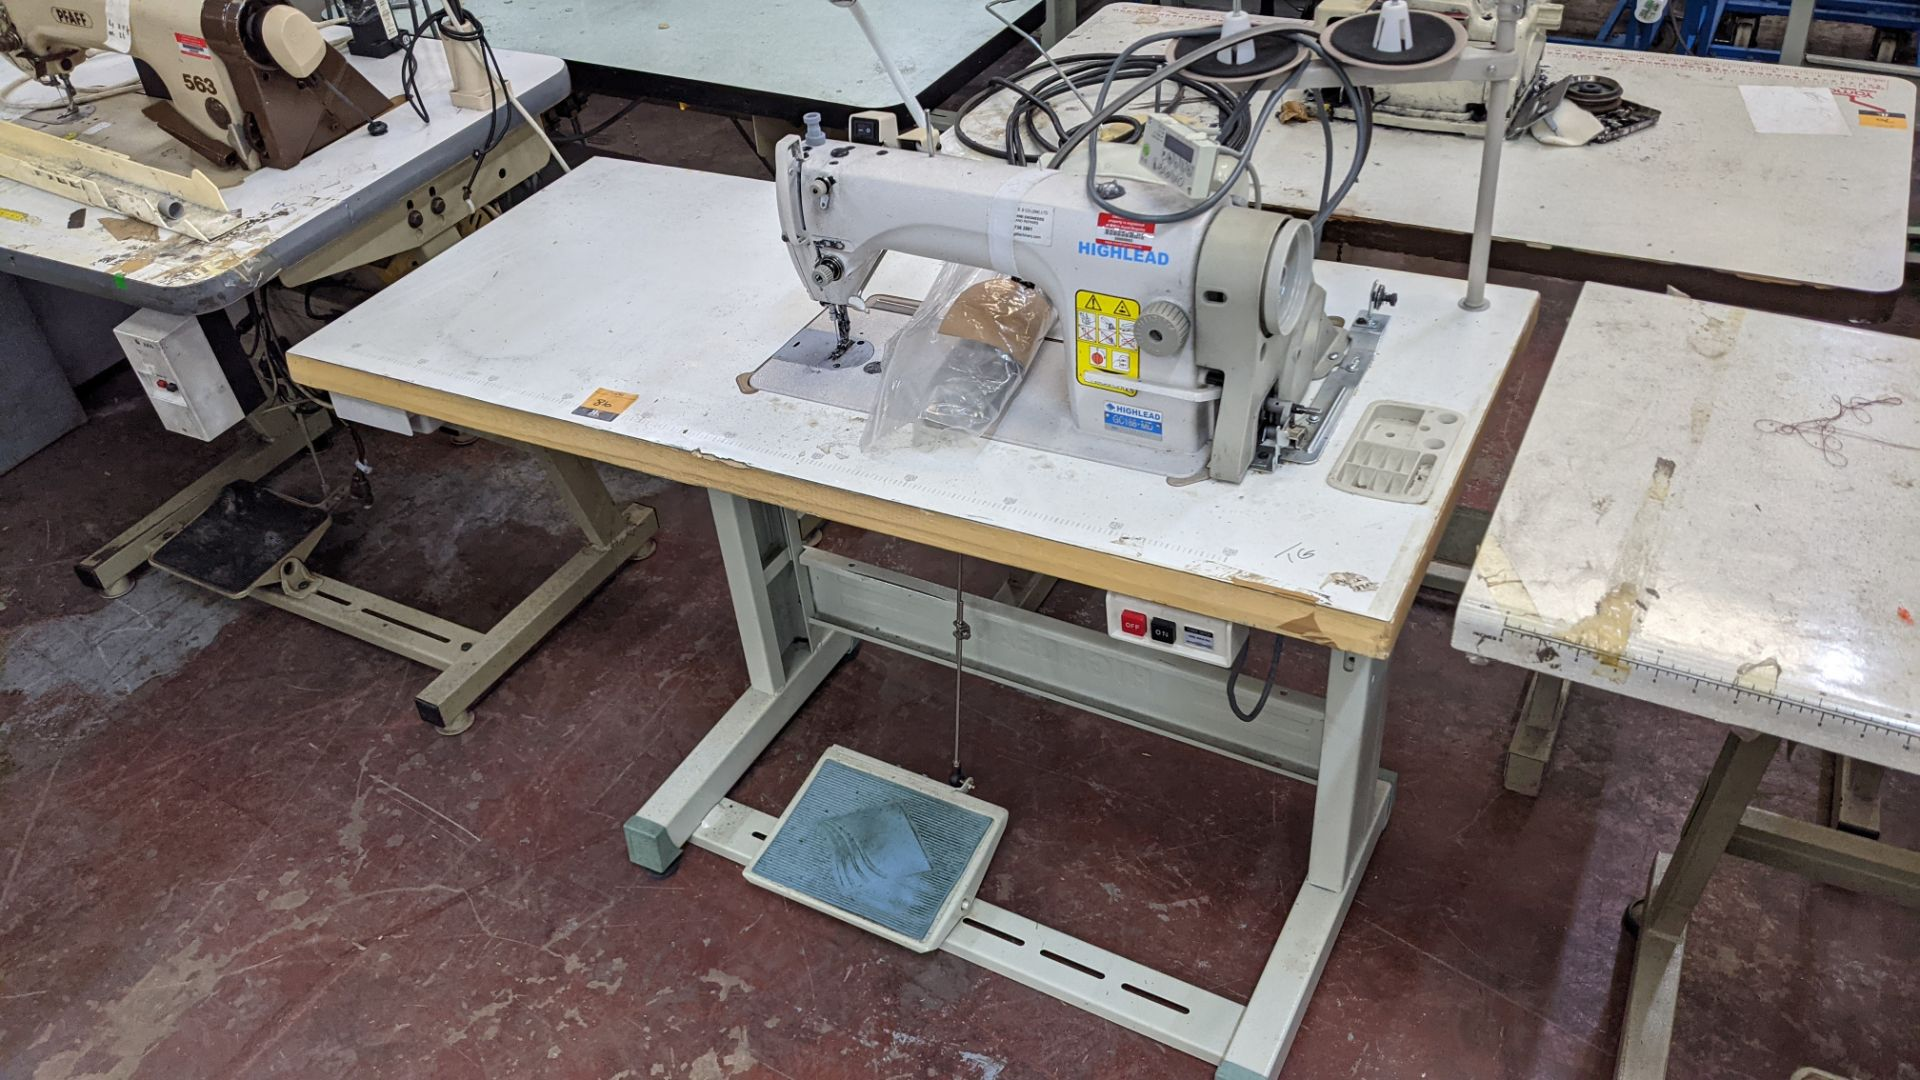 Highlead model GC188-MD sewing machine with model F-10 digital controller - Image 2 of 15